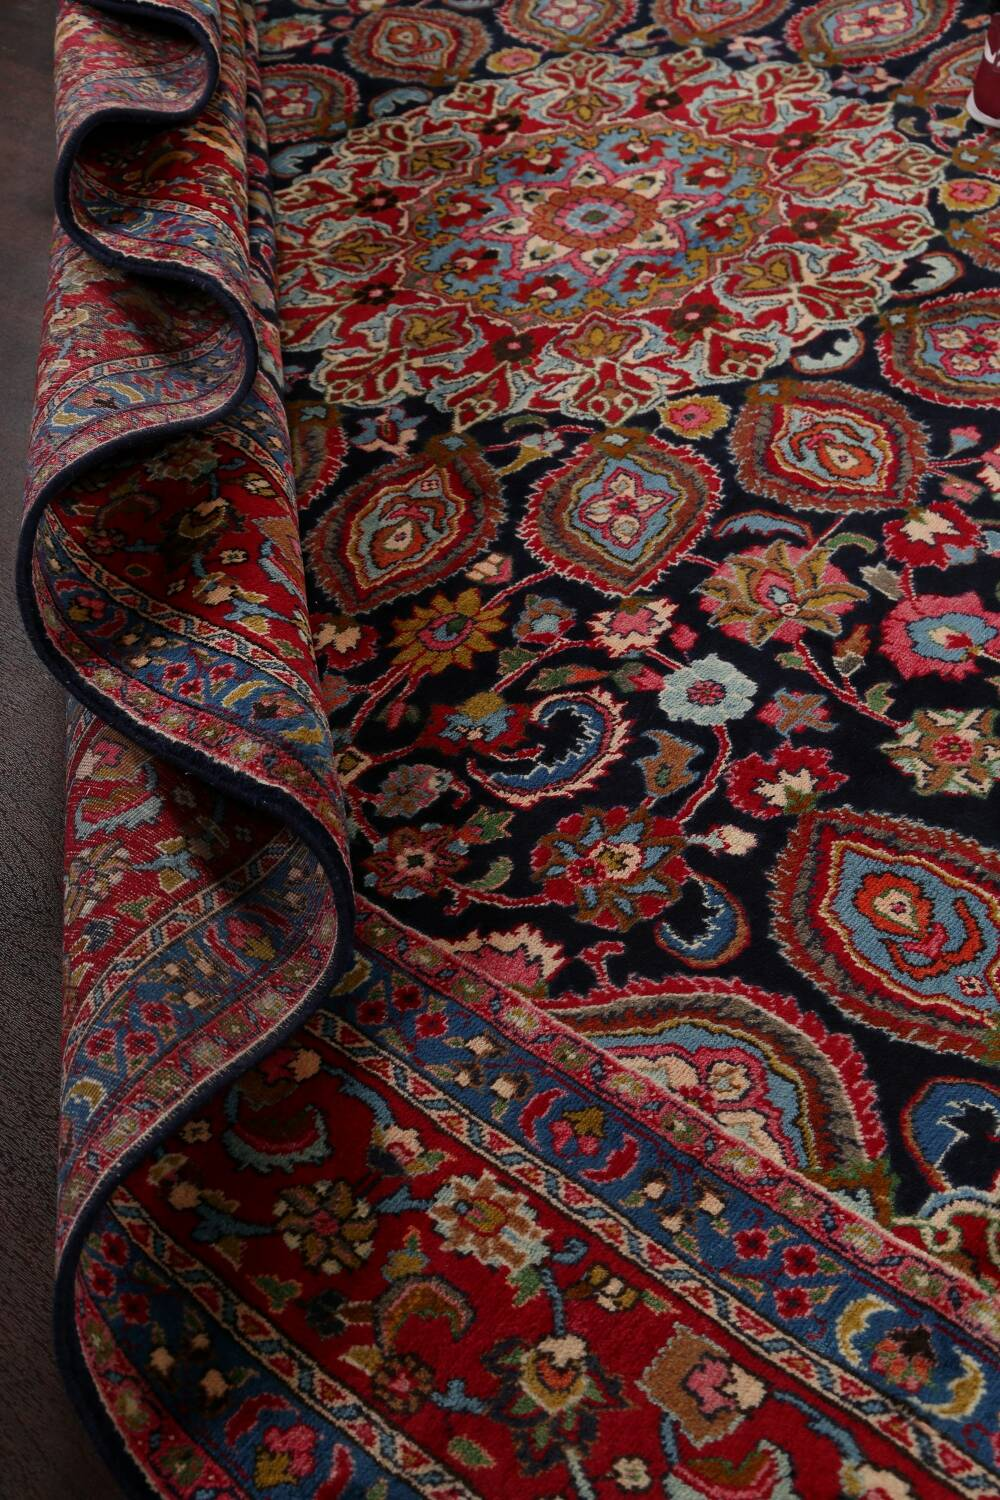 Navy Blue Floral Mashad Persian Area Rug 9x13 image 18